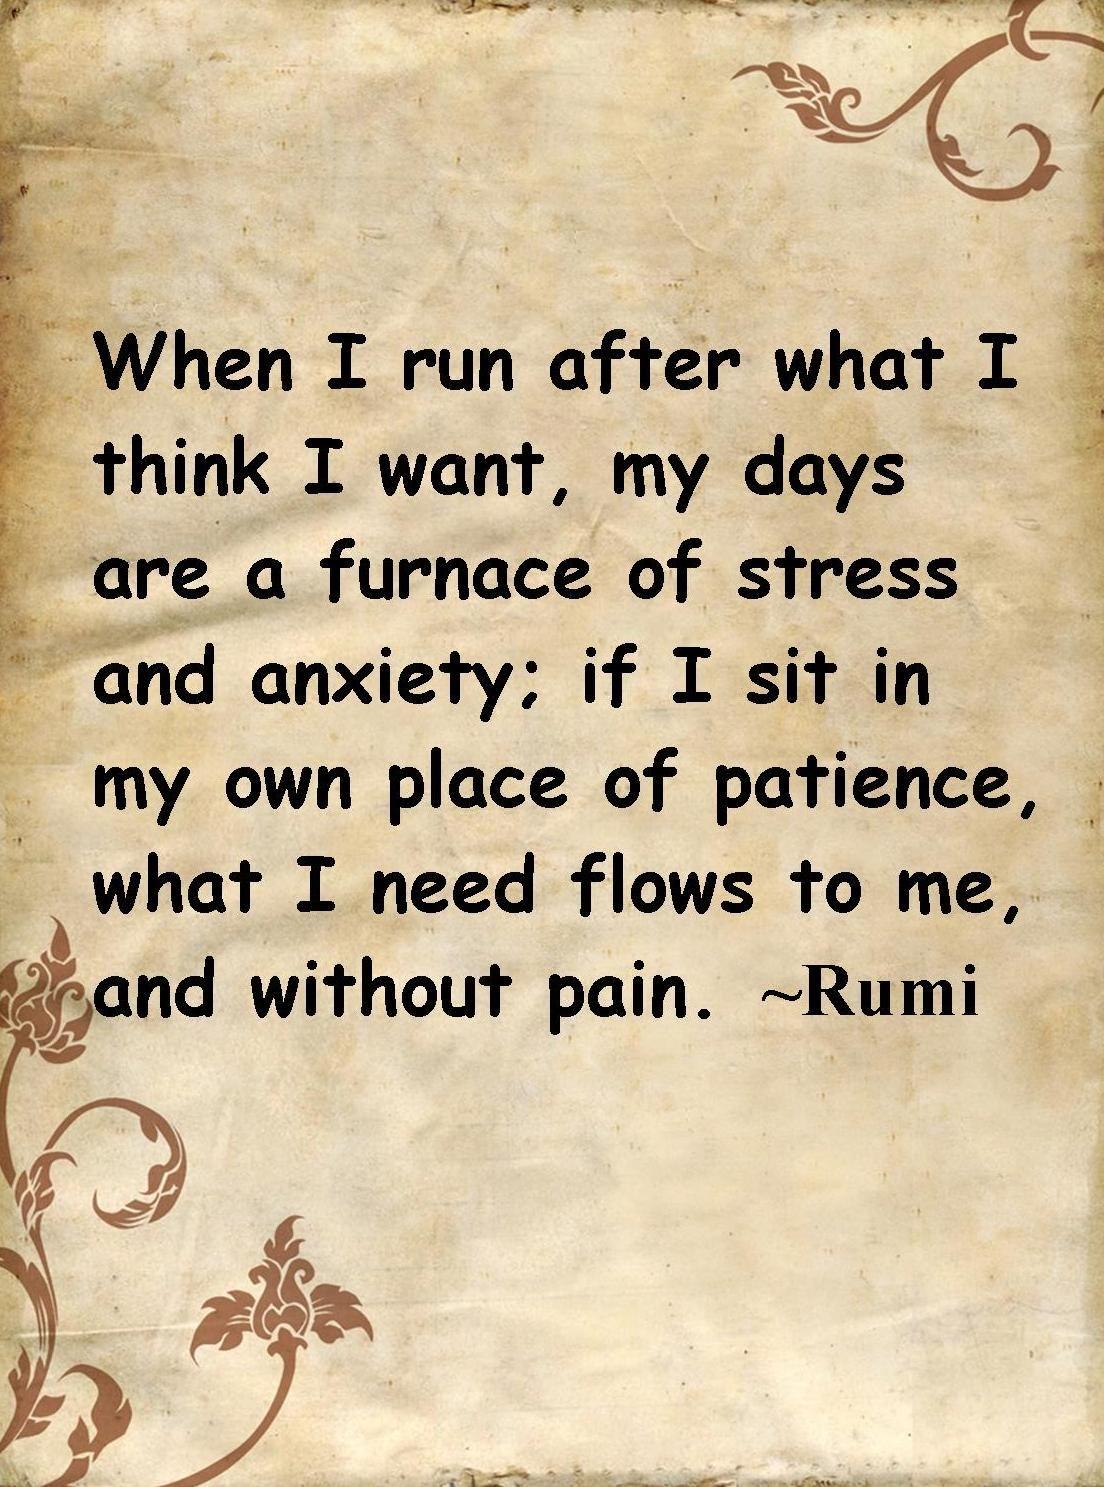 Rumi Quotes On Life Rumi Quotes On Life  Google Search  Rumi Quotes  Pinterest